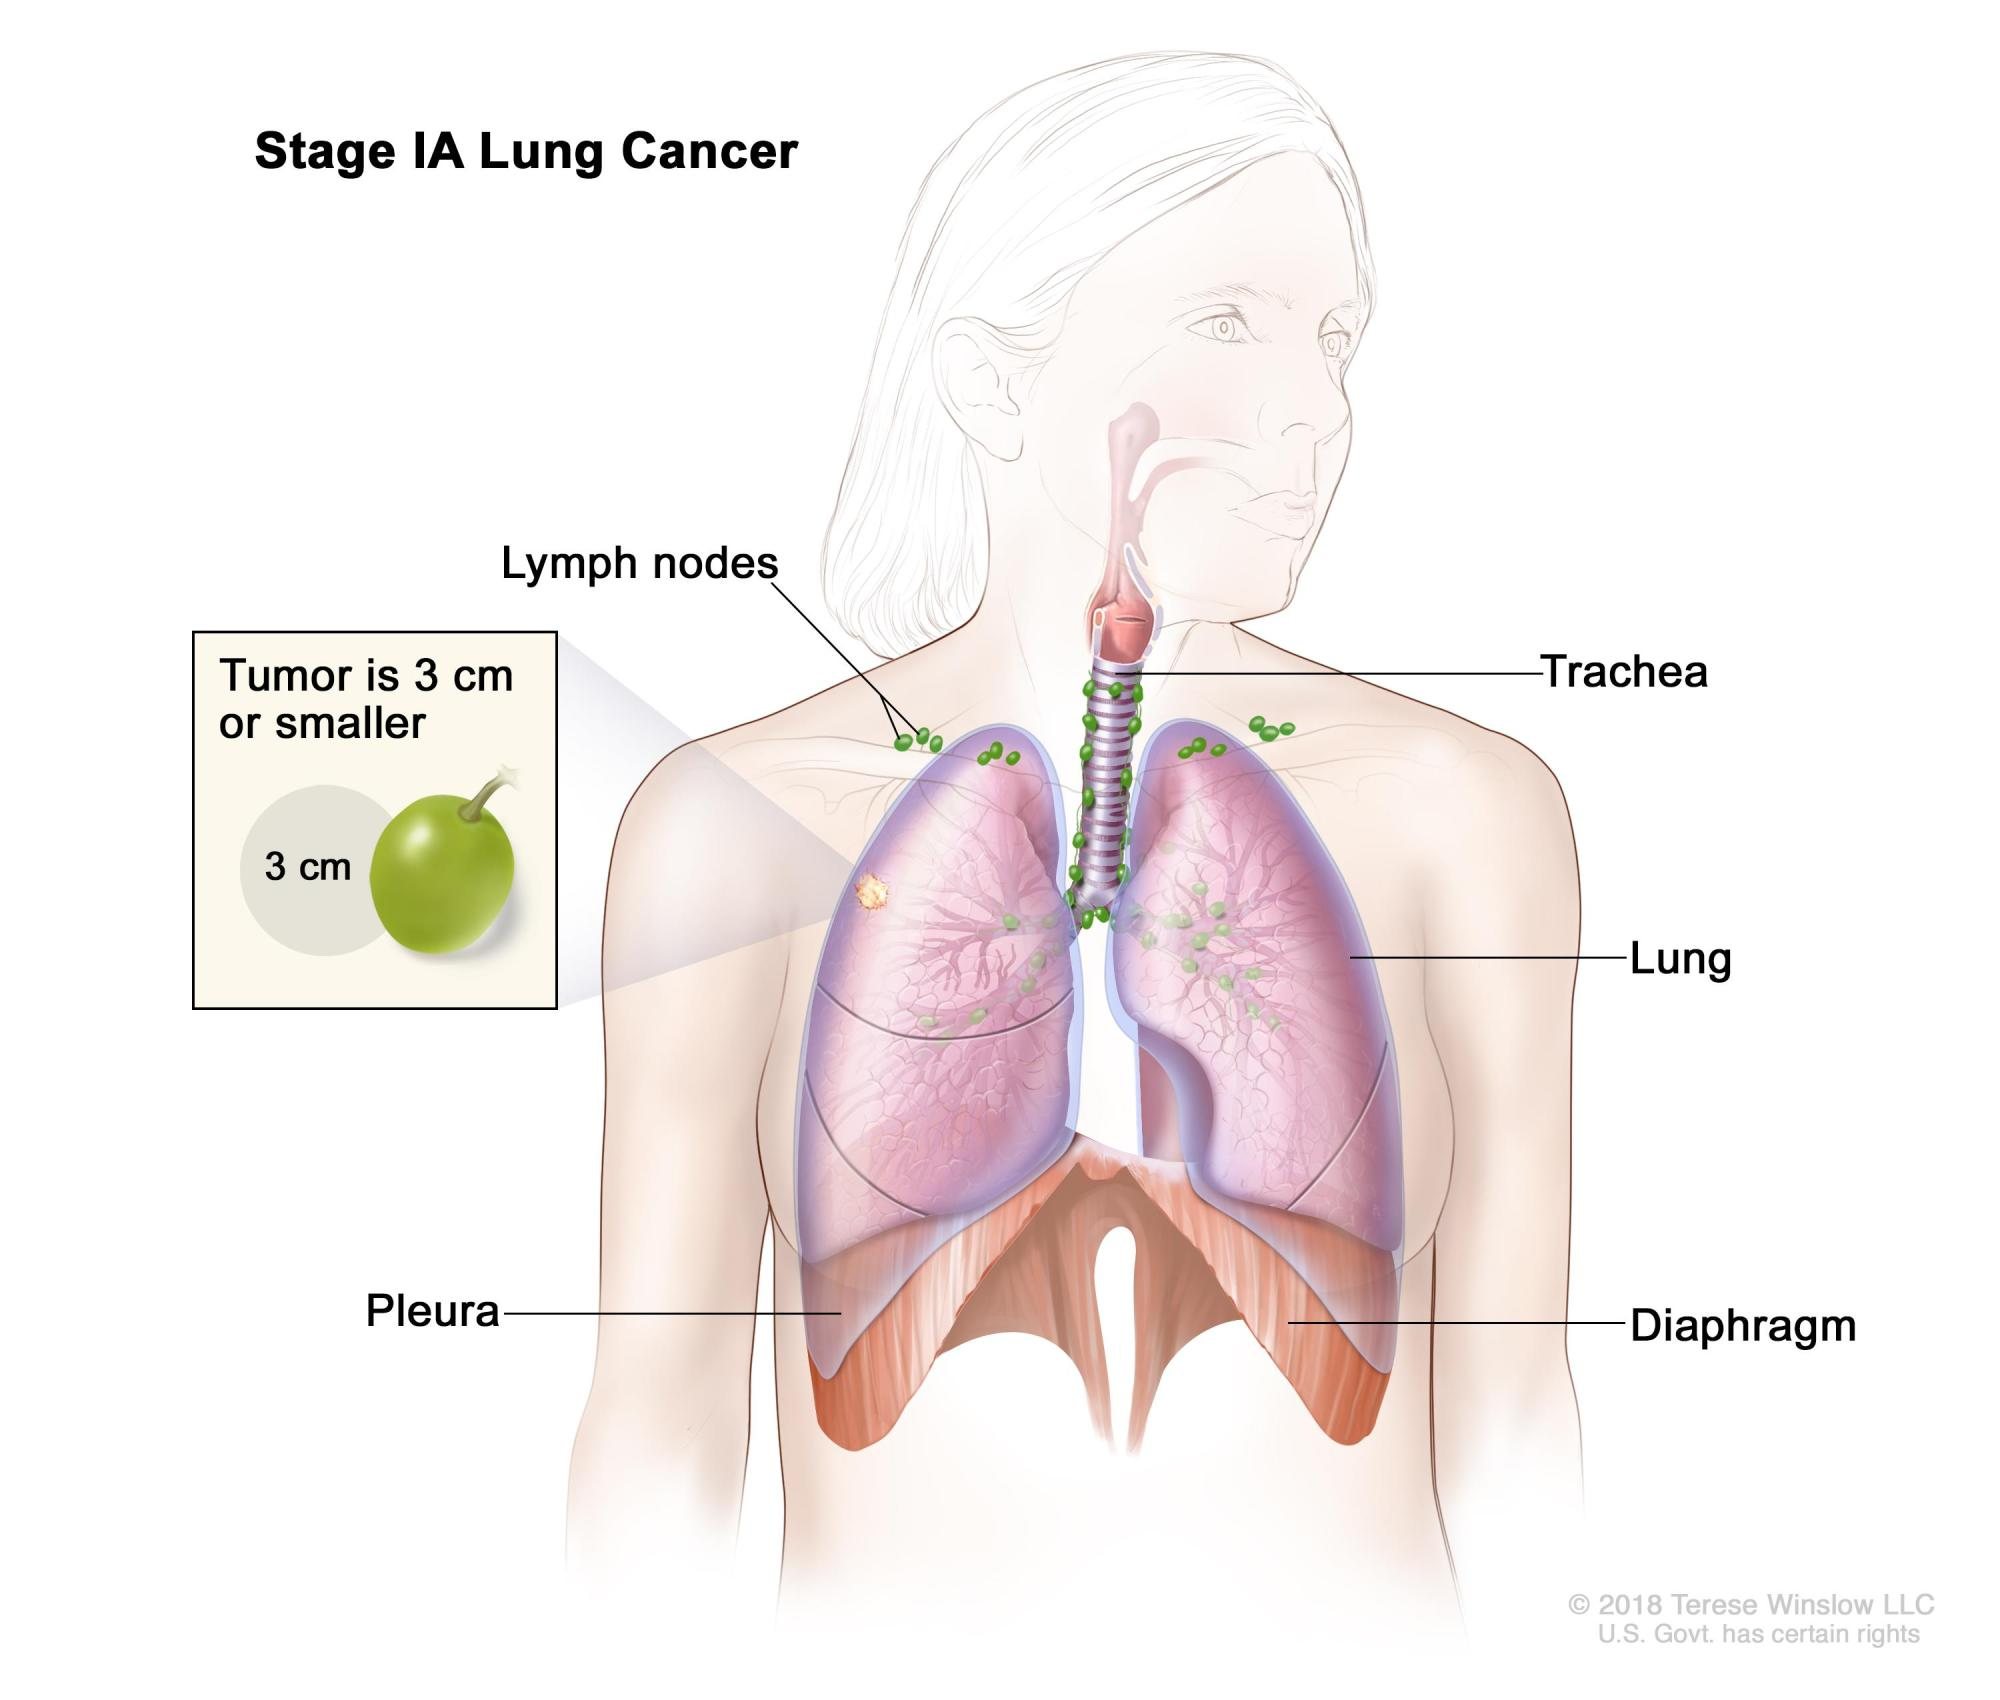 hight resolution of stage ia lung cancer the tumor is in the lung only and is 3 centimeters or smaller cancer has not spread to the lymph nodes